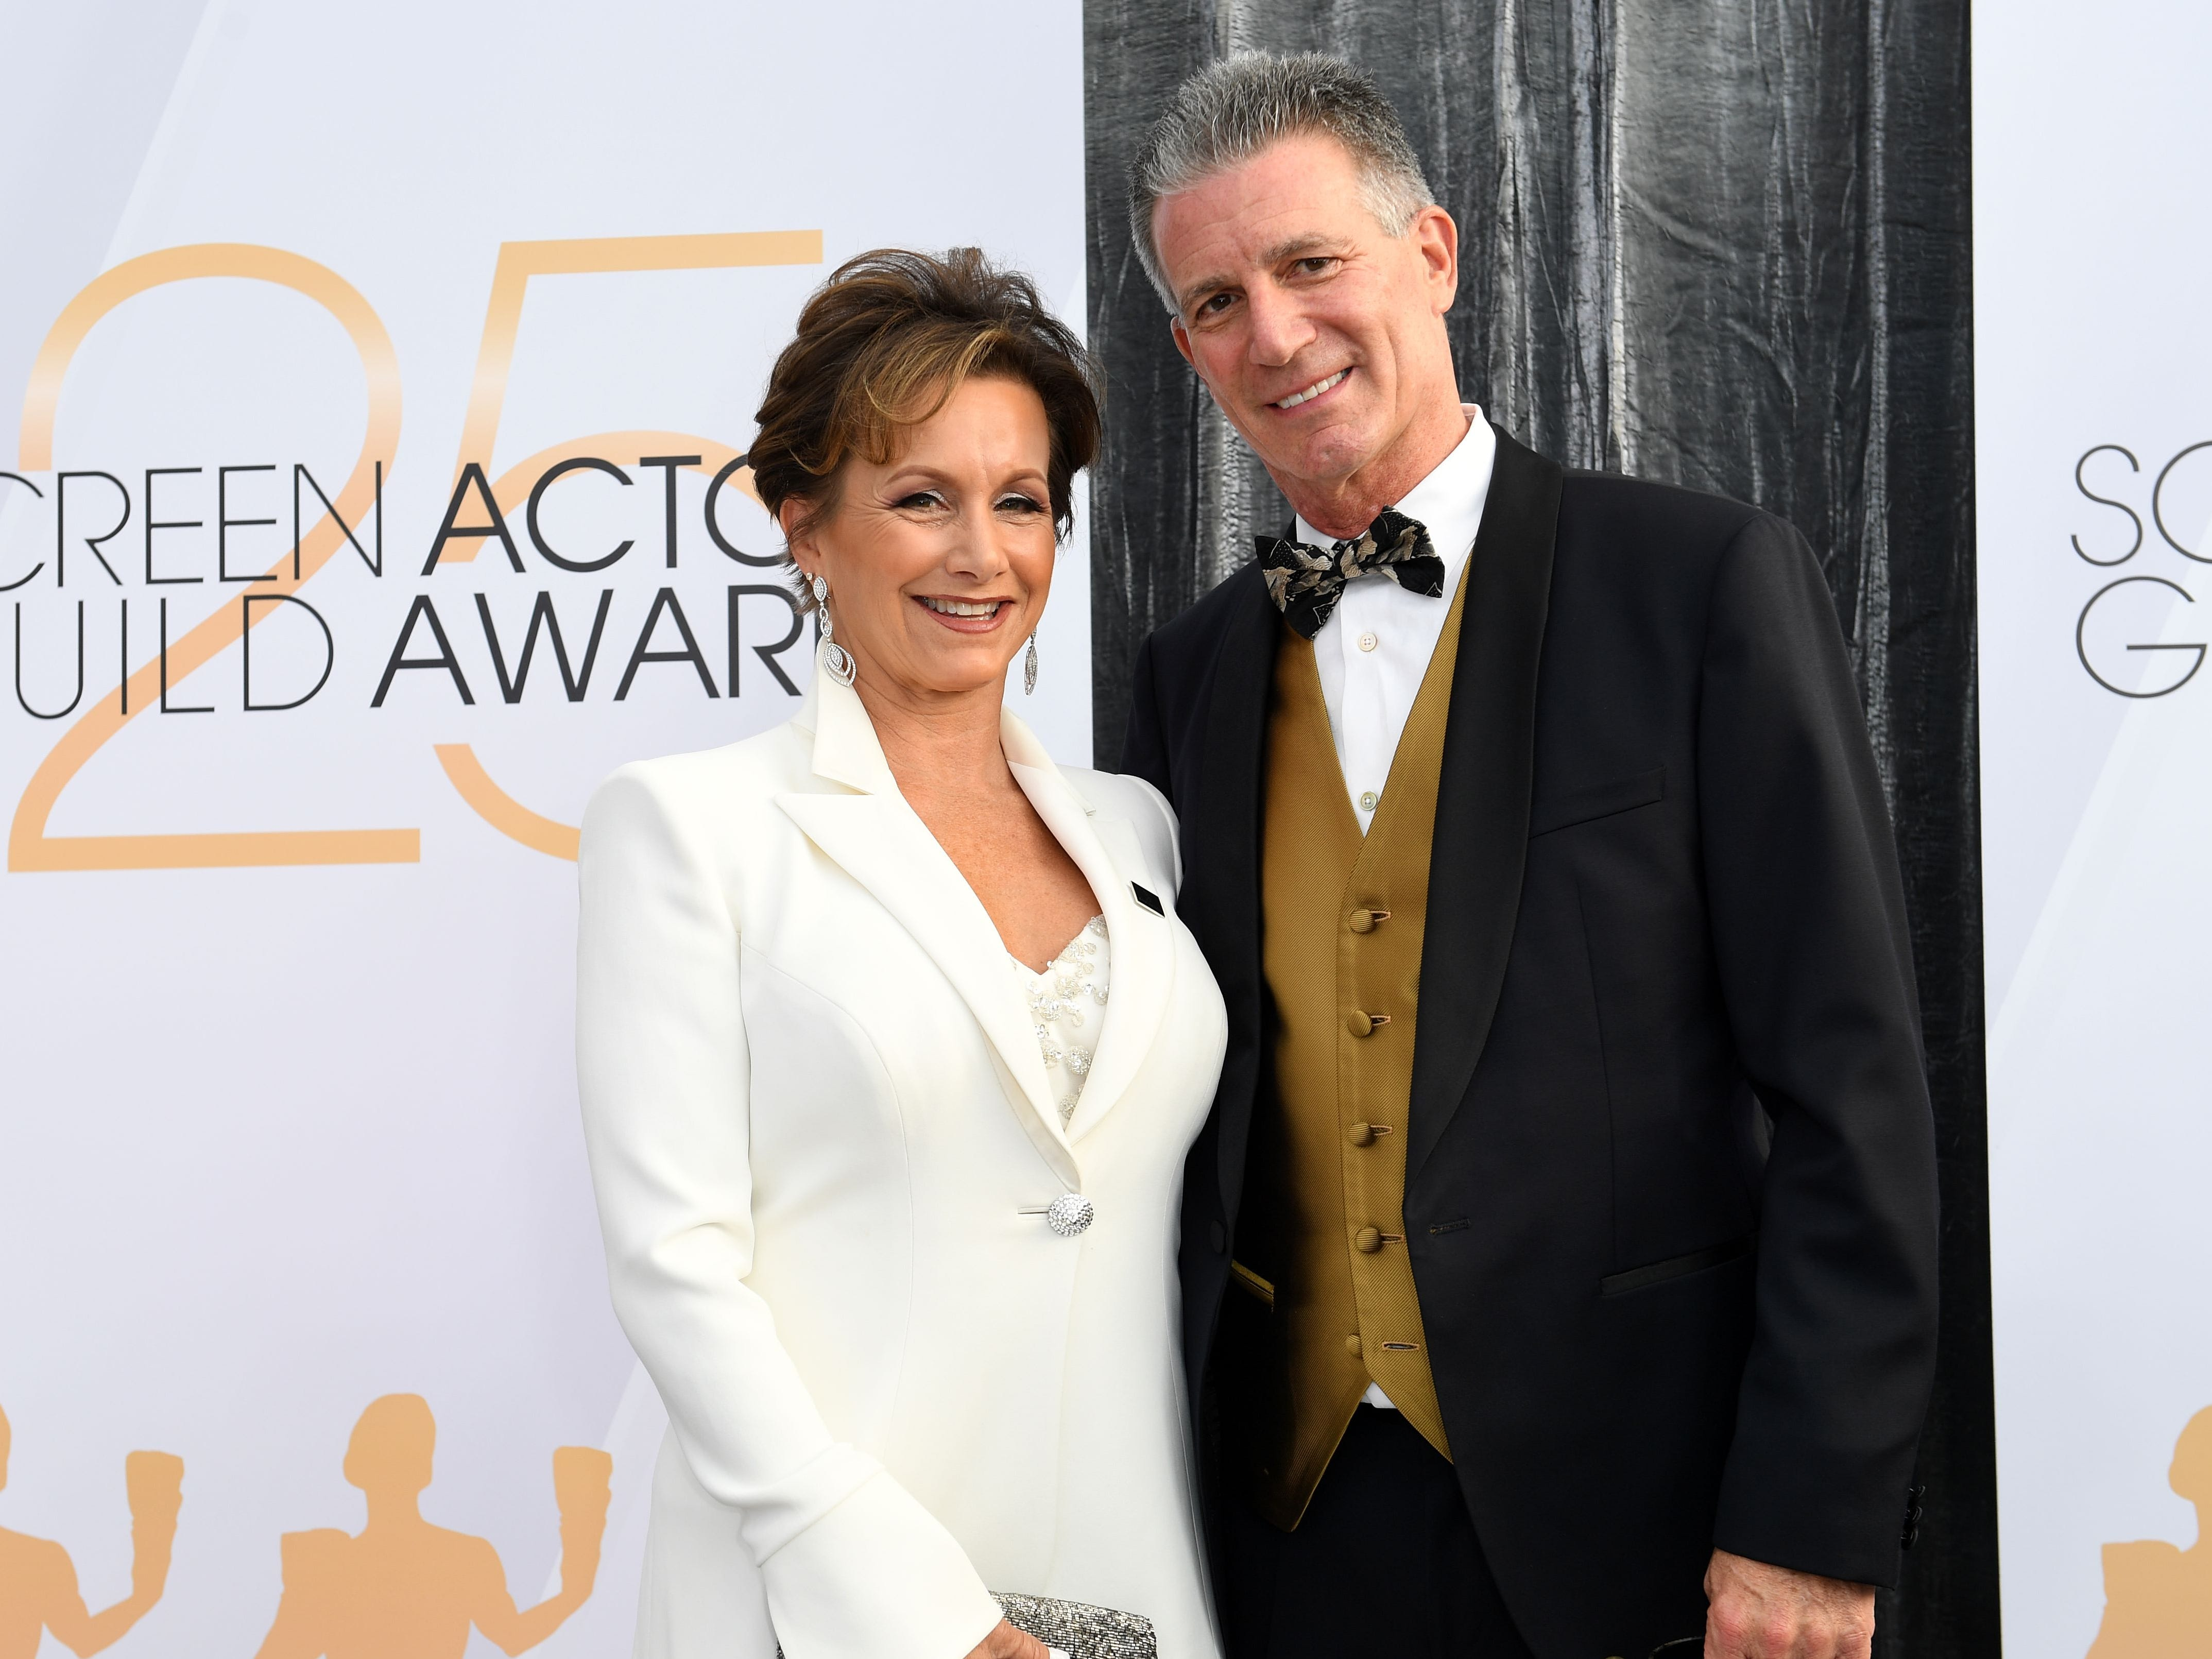 President of SAG-AFTRA Gabrielle Carteris and husband Charles Isaacs  attend the 25th Annual Screen Actors Guild Awards at The Shrine Auditorium, in Los Angeles, California, on January 27, 2019. (Photo by VALERIE MACON / AFP)VALERIE MACON/AFP/Getty Images ORG XMIT: 25th Annu ORIG FILE ID: AFP_1CR2S4